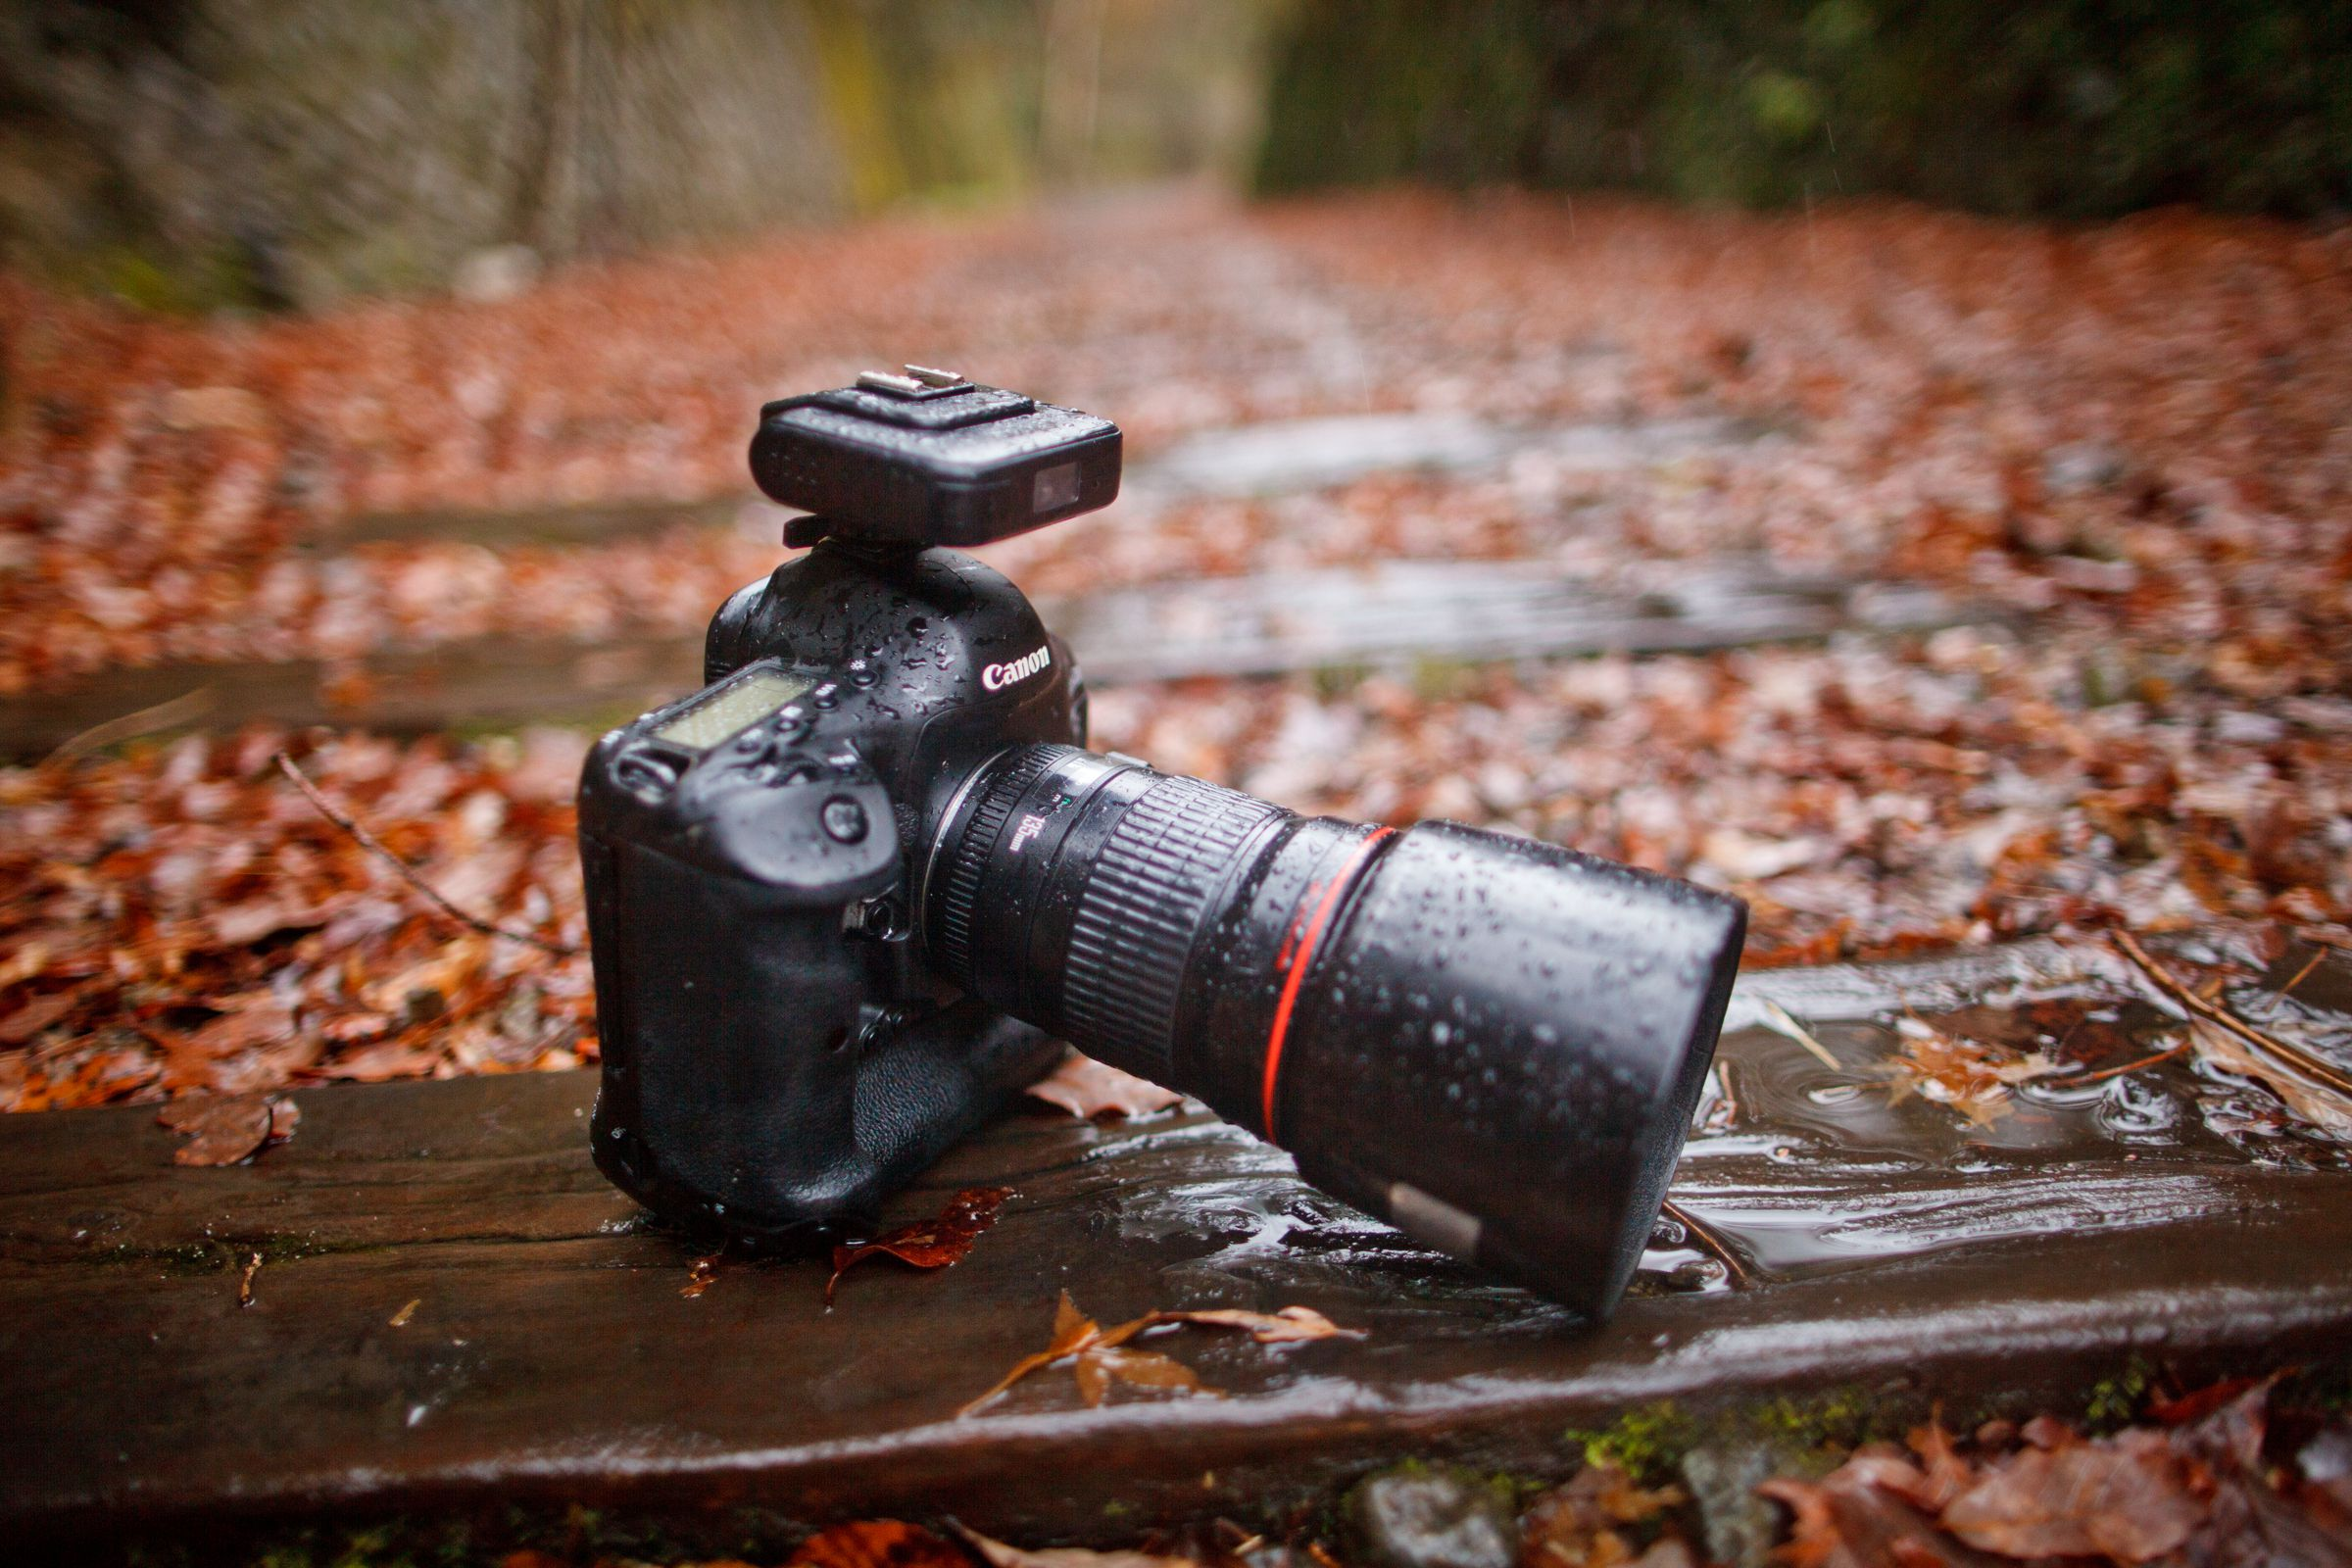 How to protect camera gears during monsoon – A must-read for all photographers.